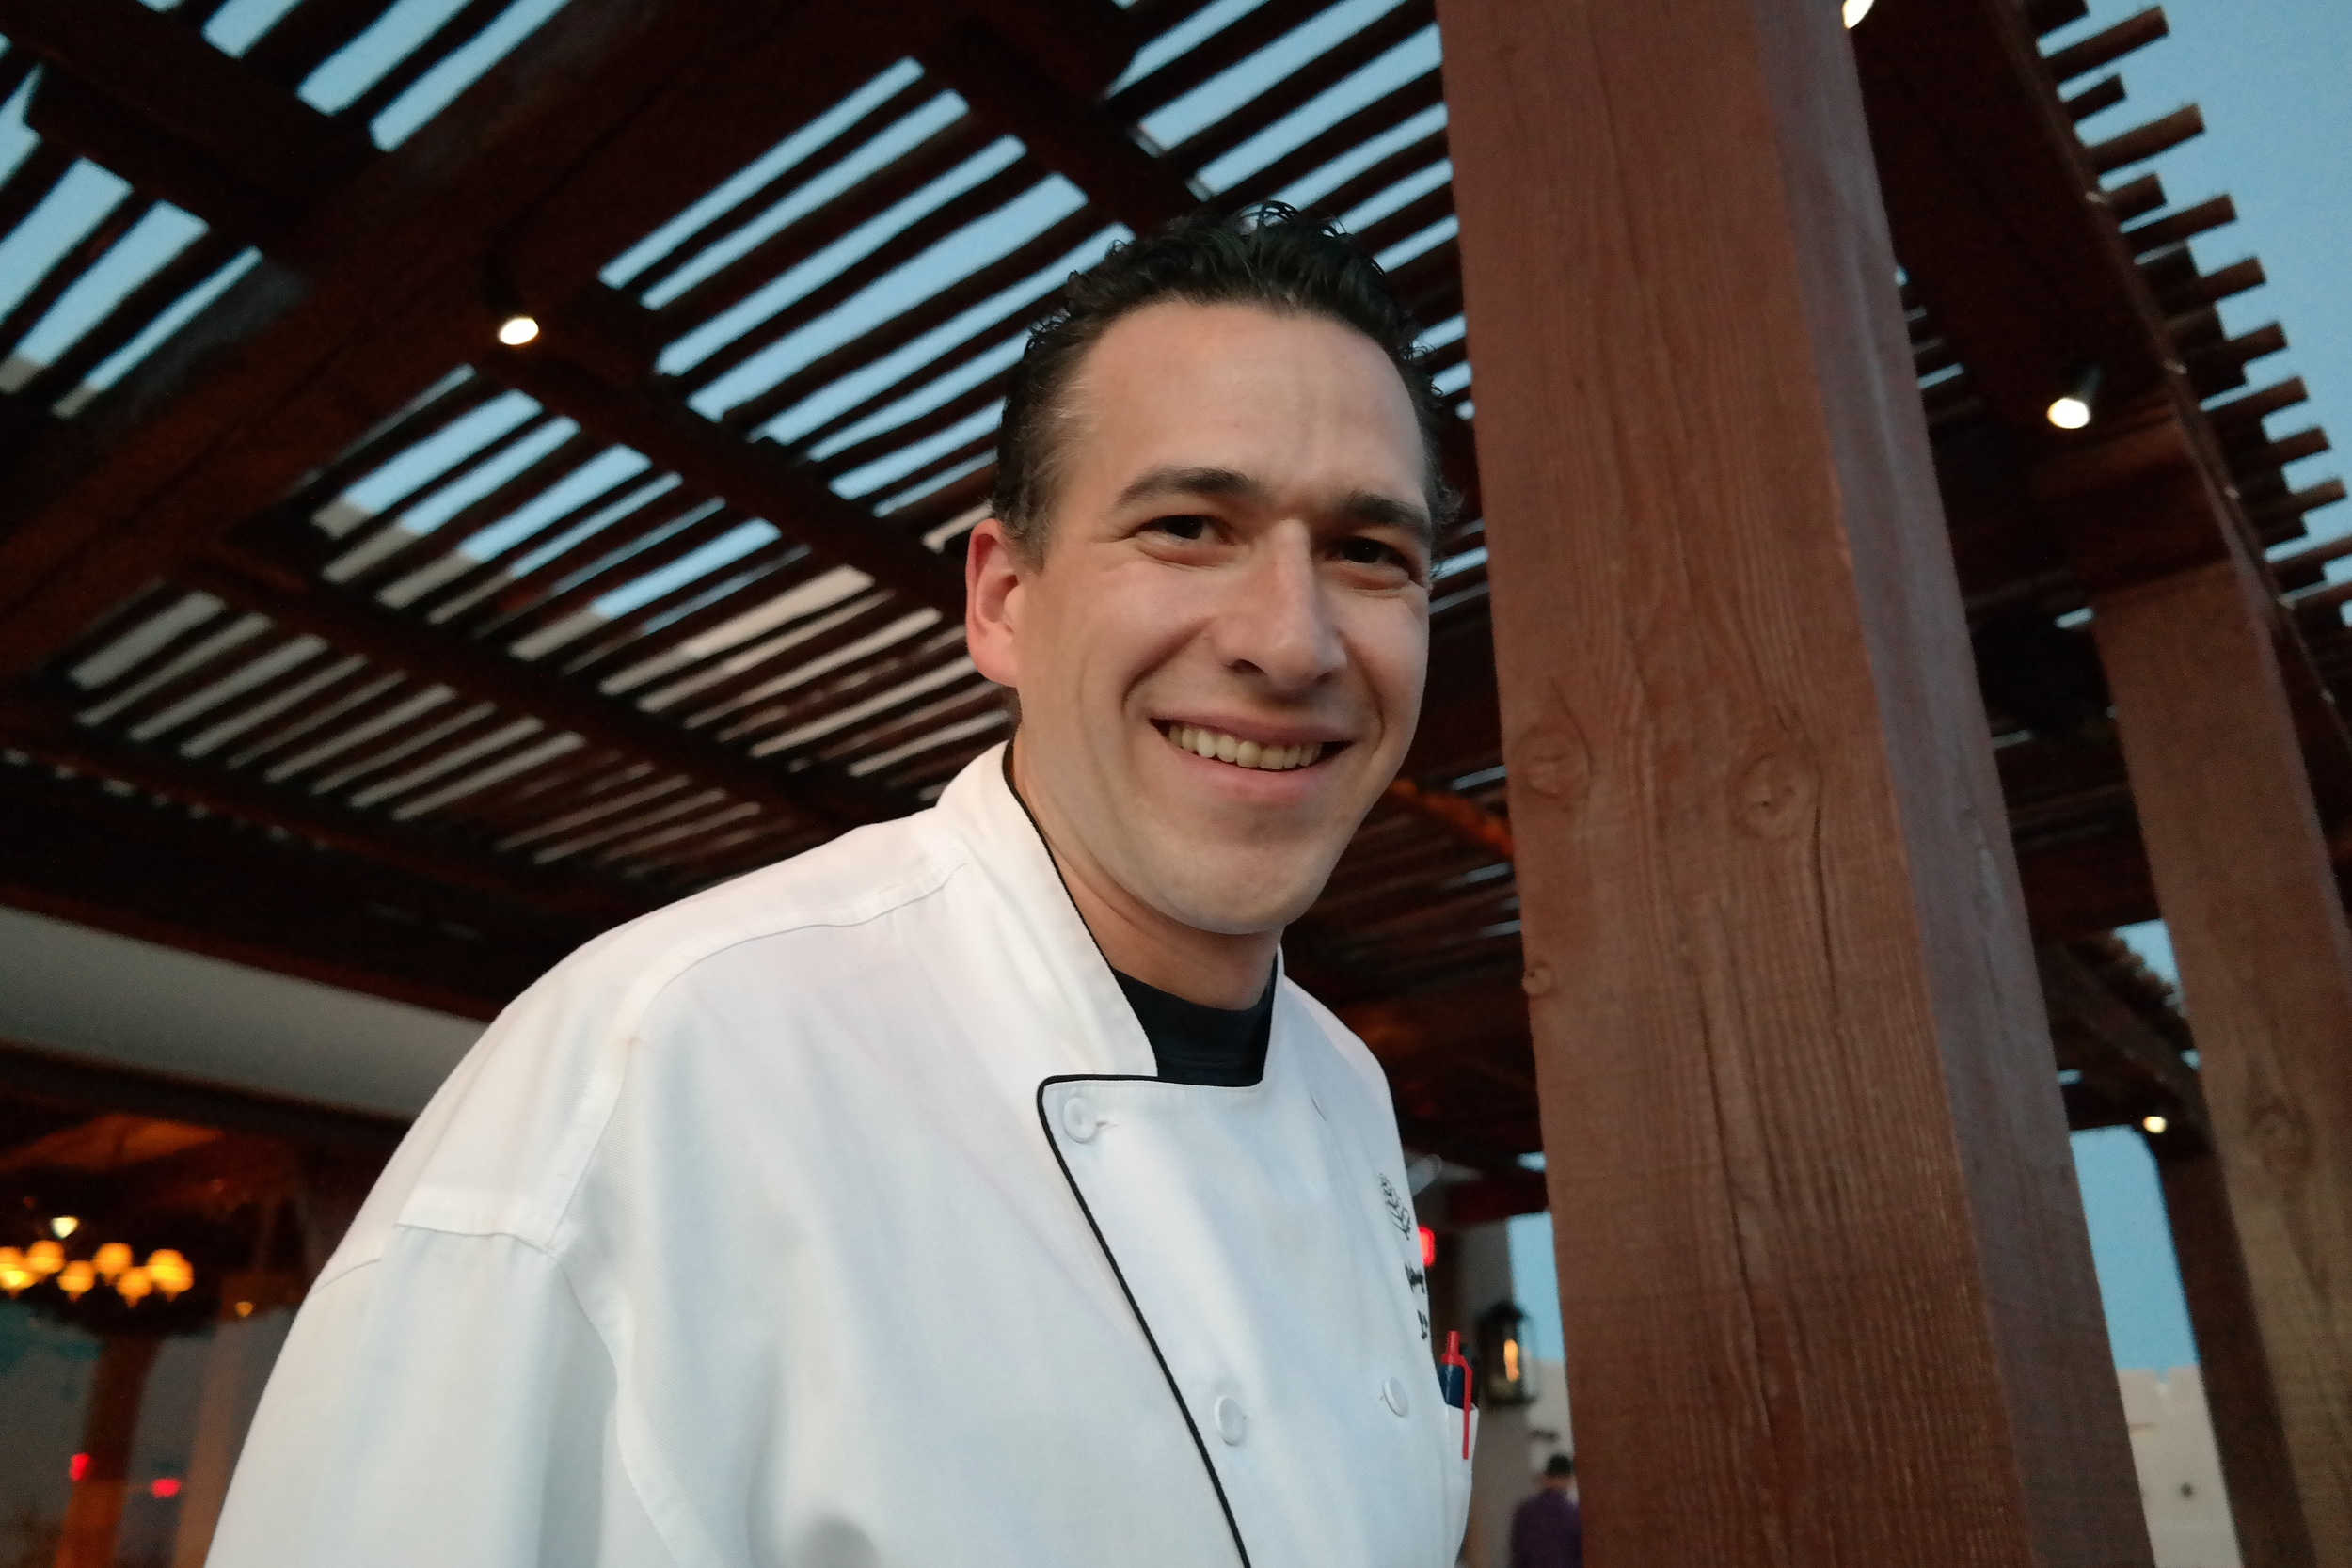 Pastry Chef Lance Whipple